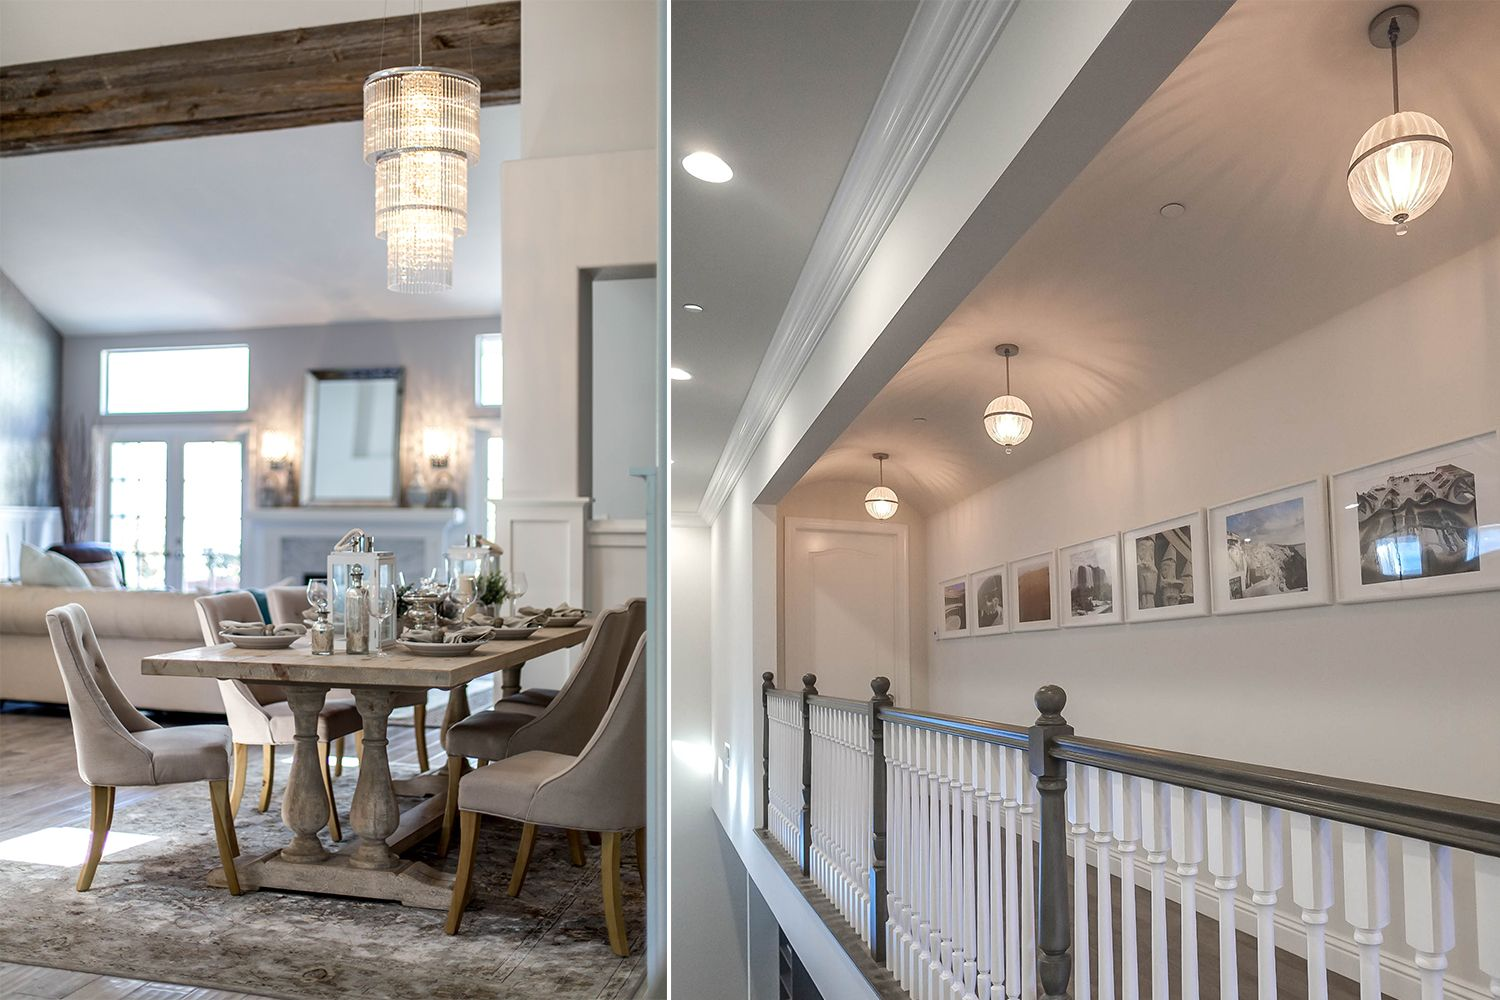 How To Choose The Right Light Fixtures For Your Home With Images